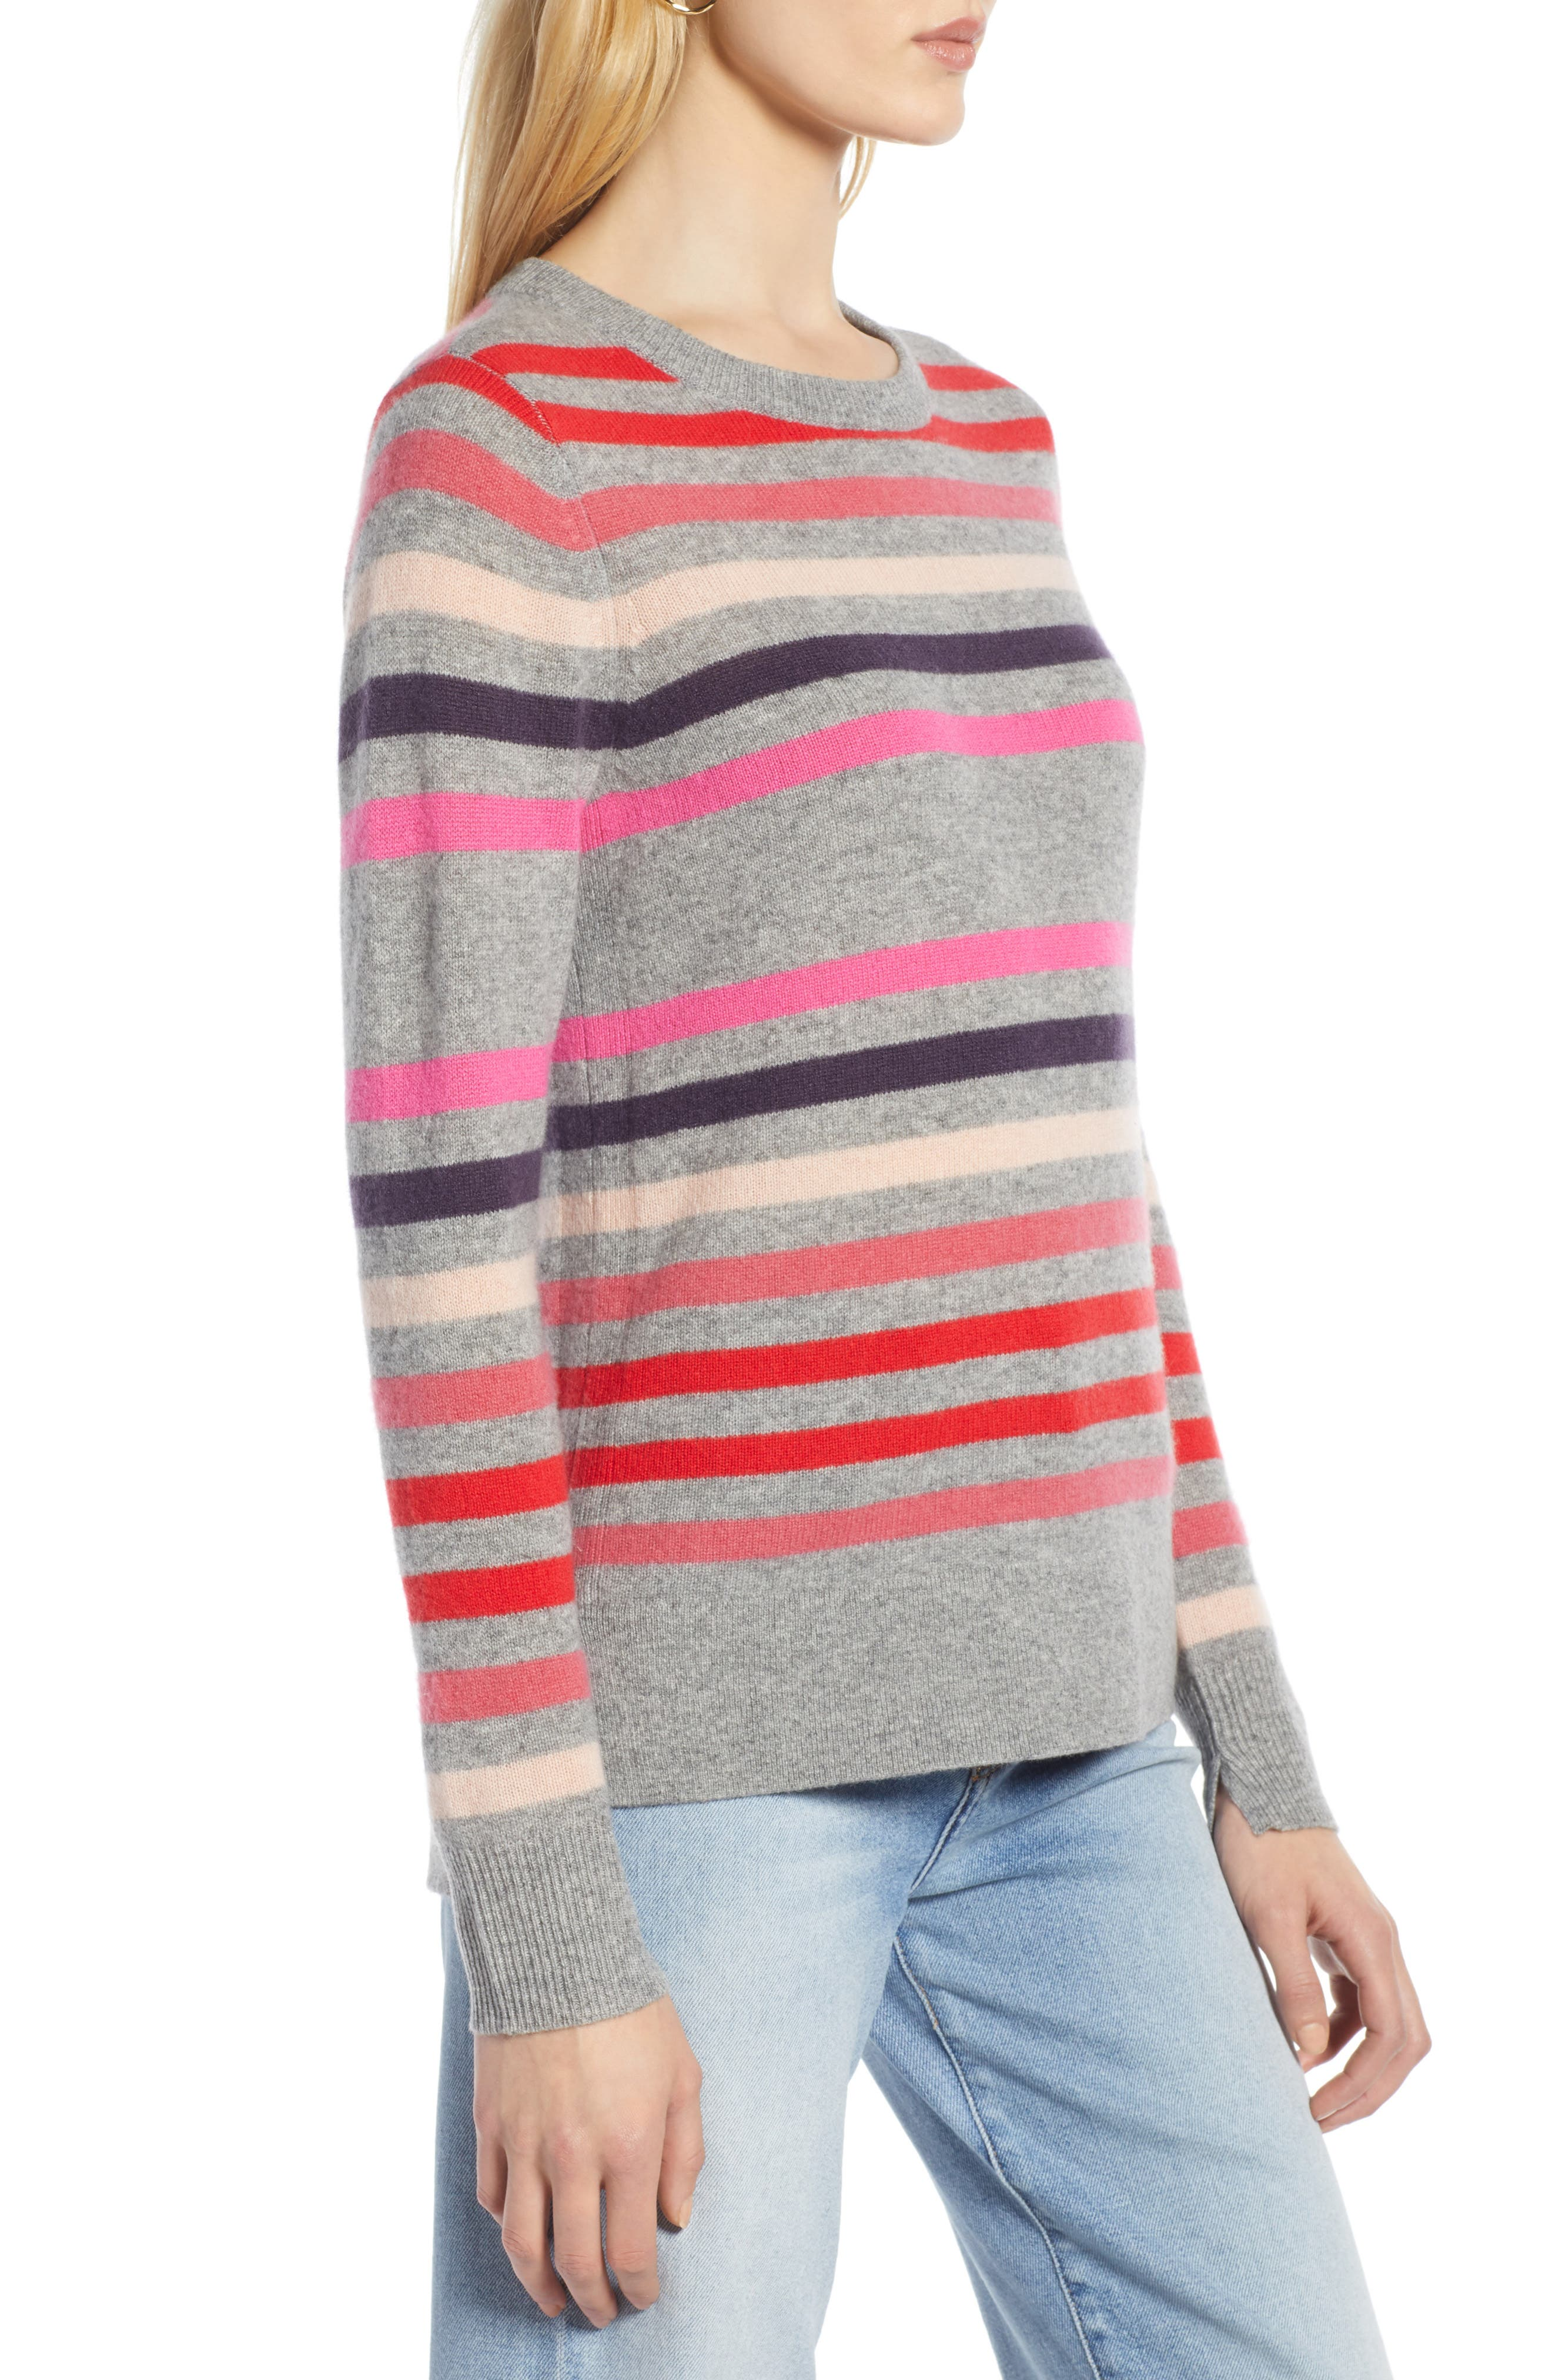 Crewneck Cashmere Sweater,                             Alternate thumbnail 3, color,                             GREY- PINK STRIPE